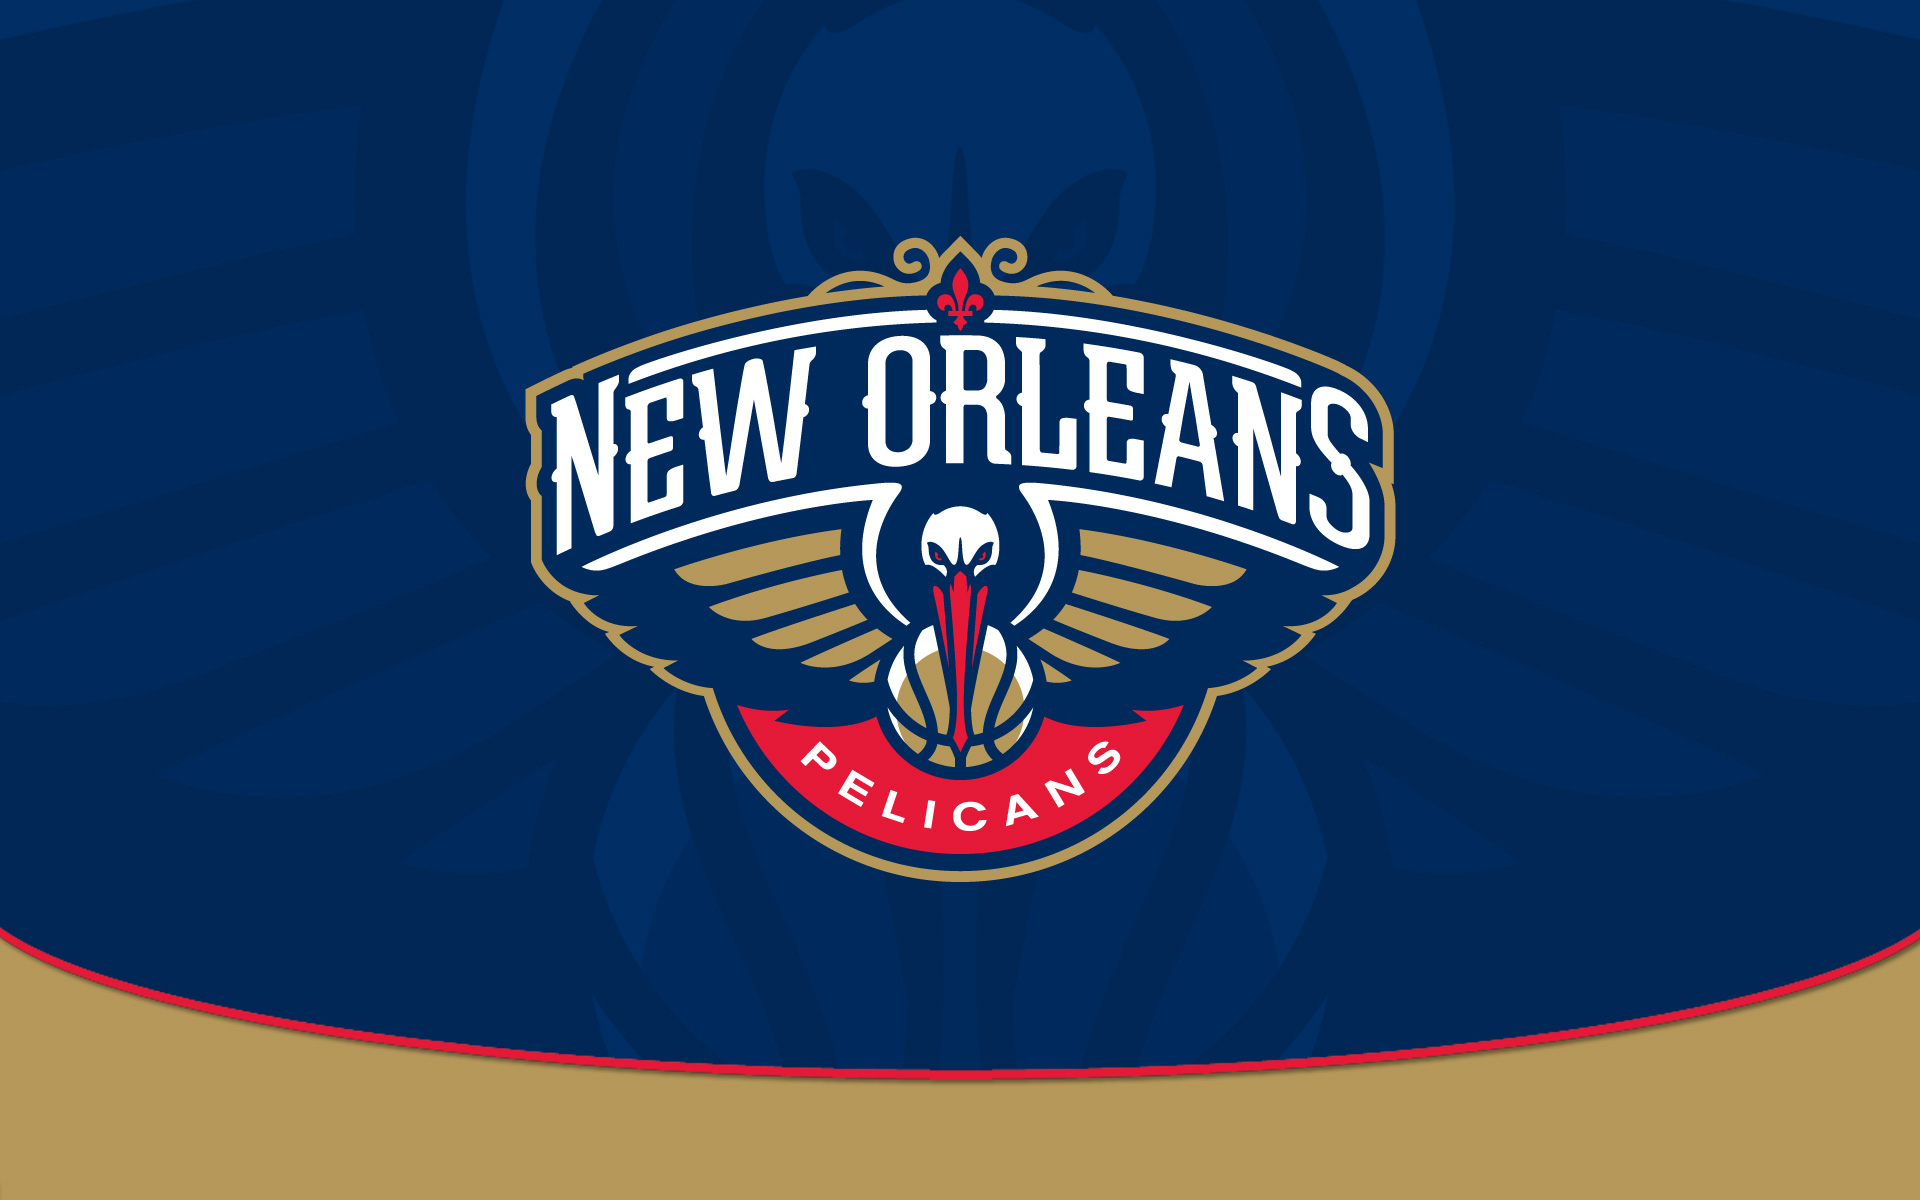 New orleans pelicans logos unveiled new orleans pelicans buycottarizona Images